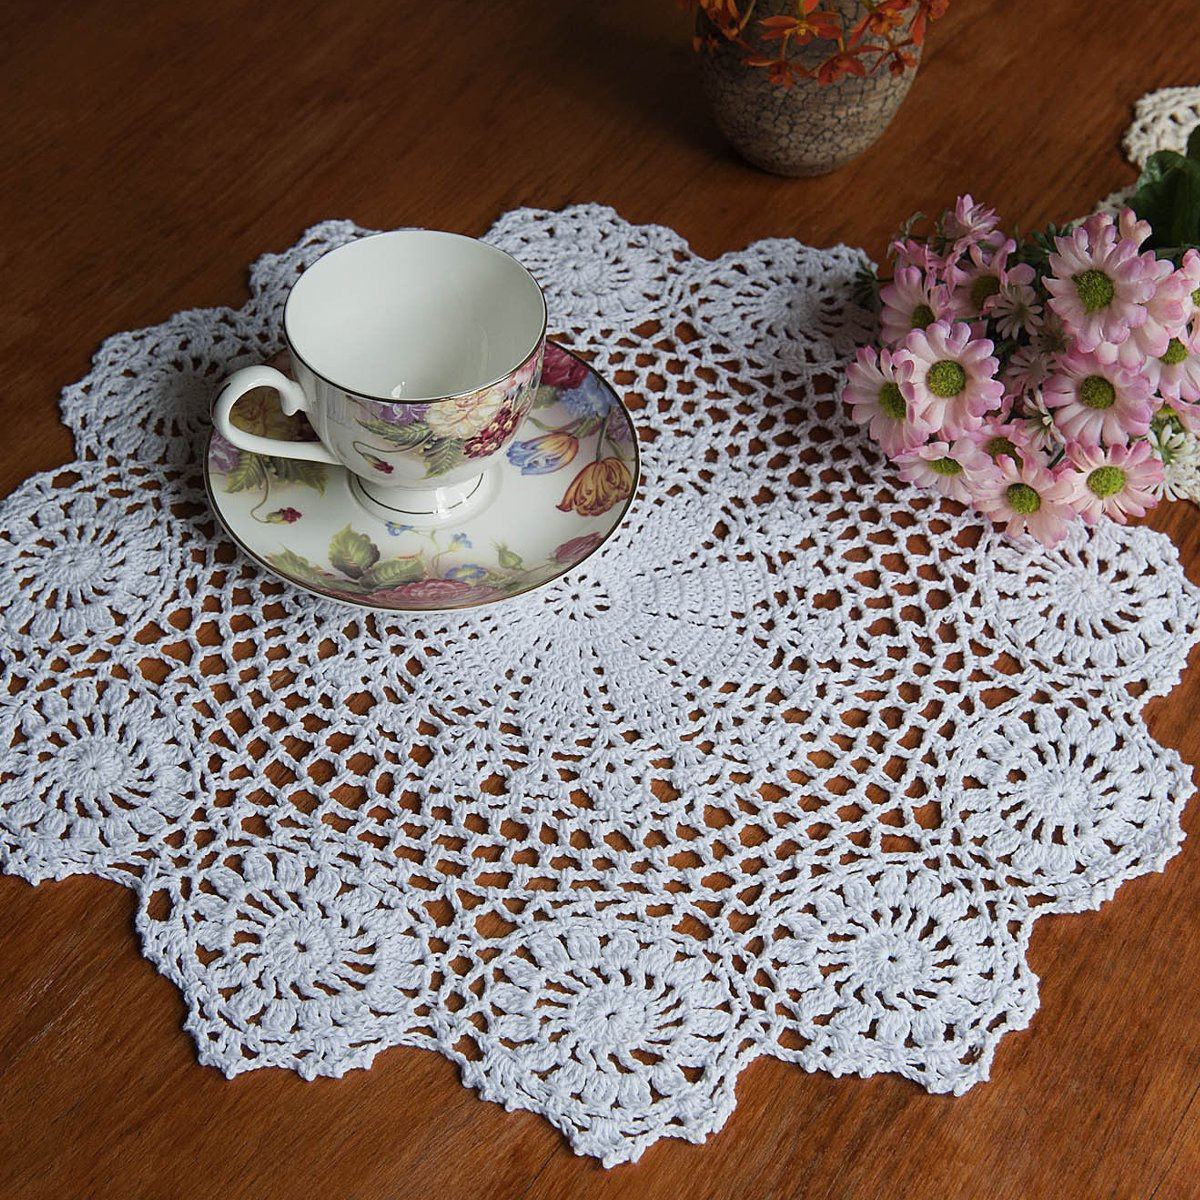 Round 37cm Cotton Yarn Hand Crocheted Lace Doily Table Mat Home Decor SKU460295